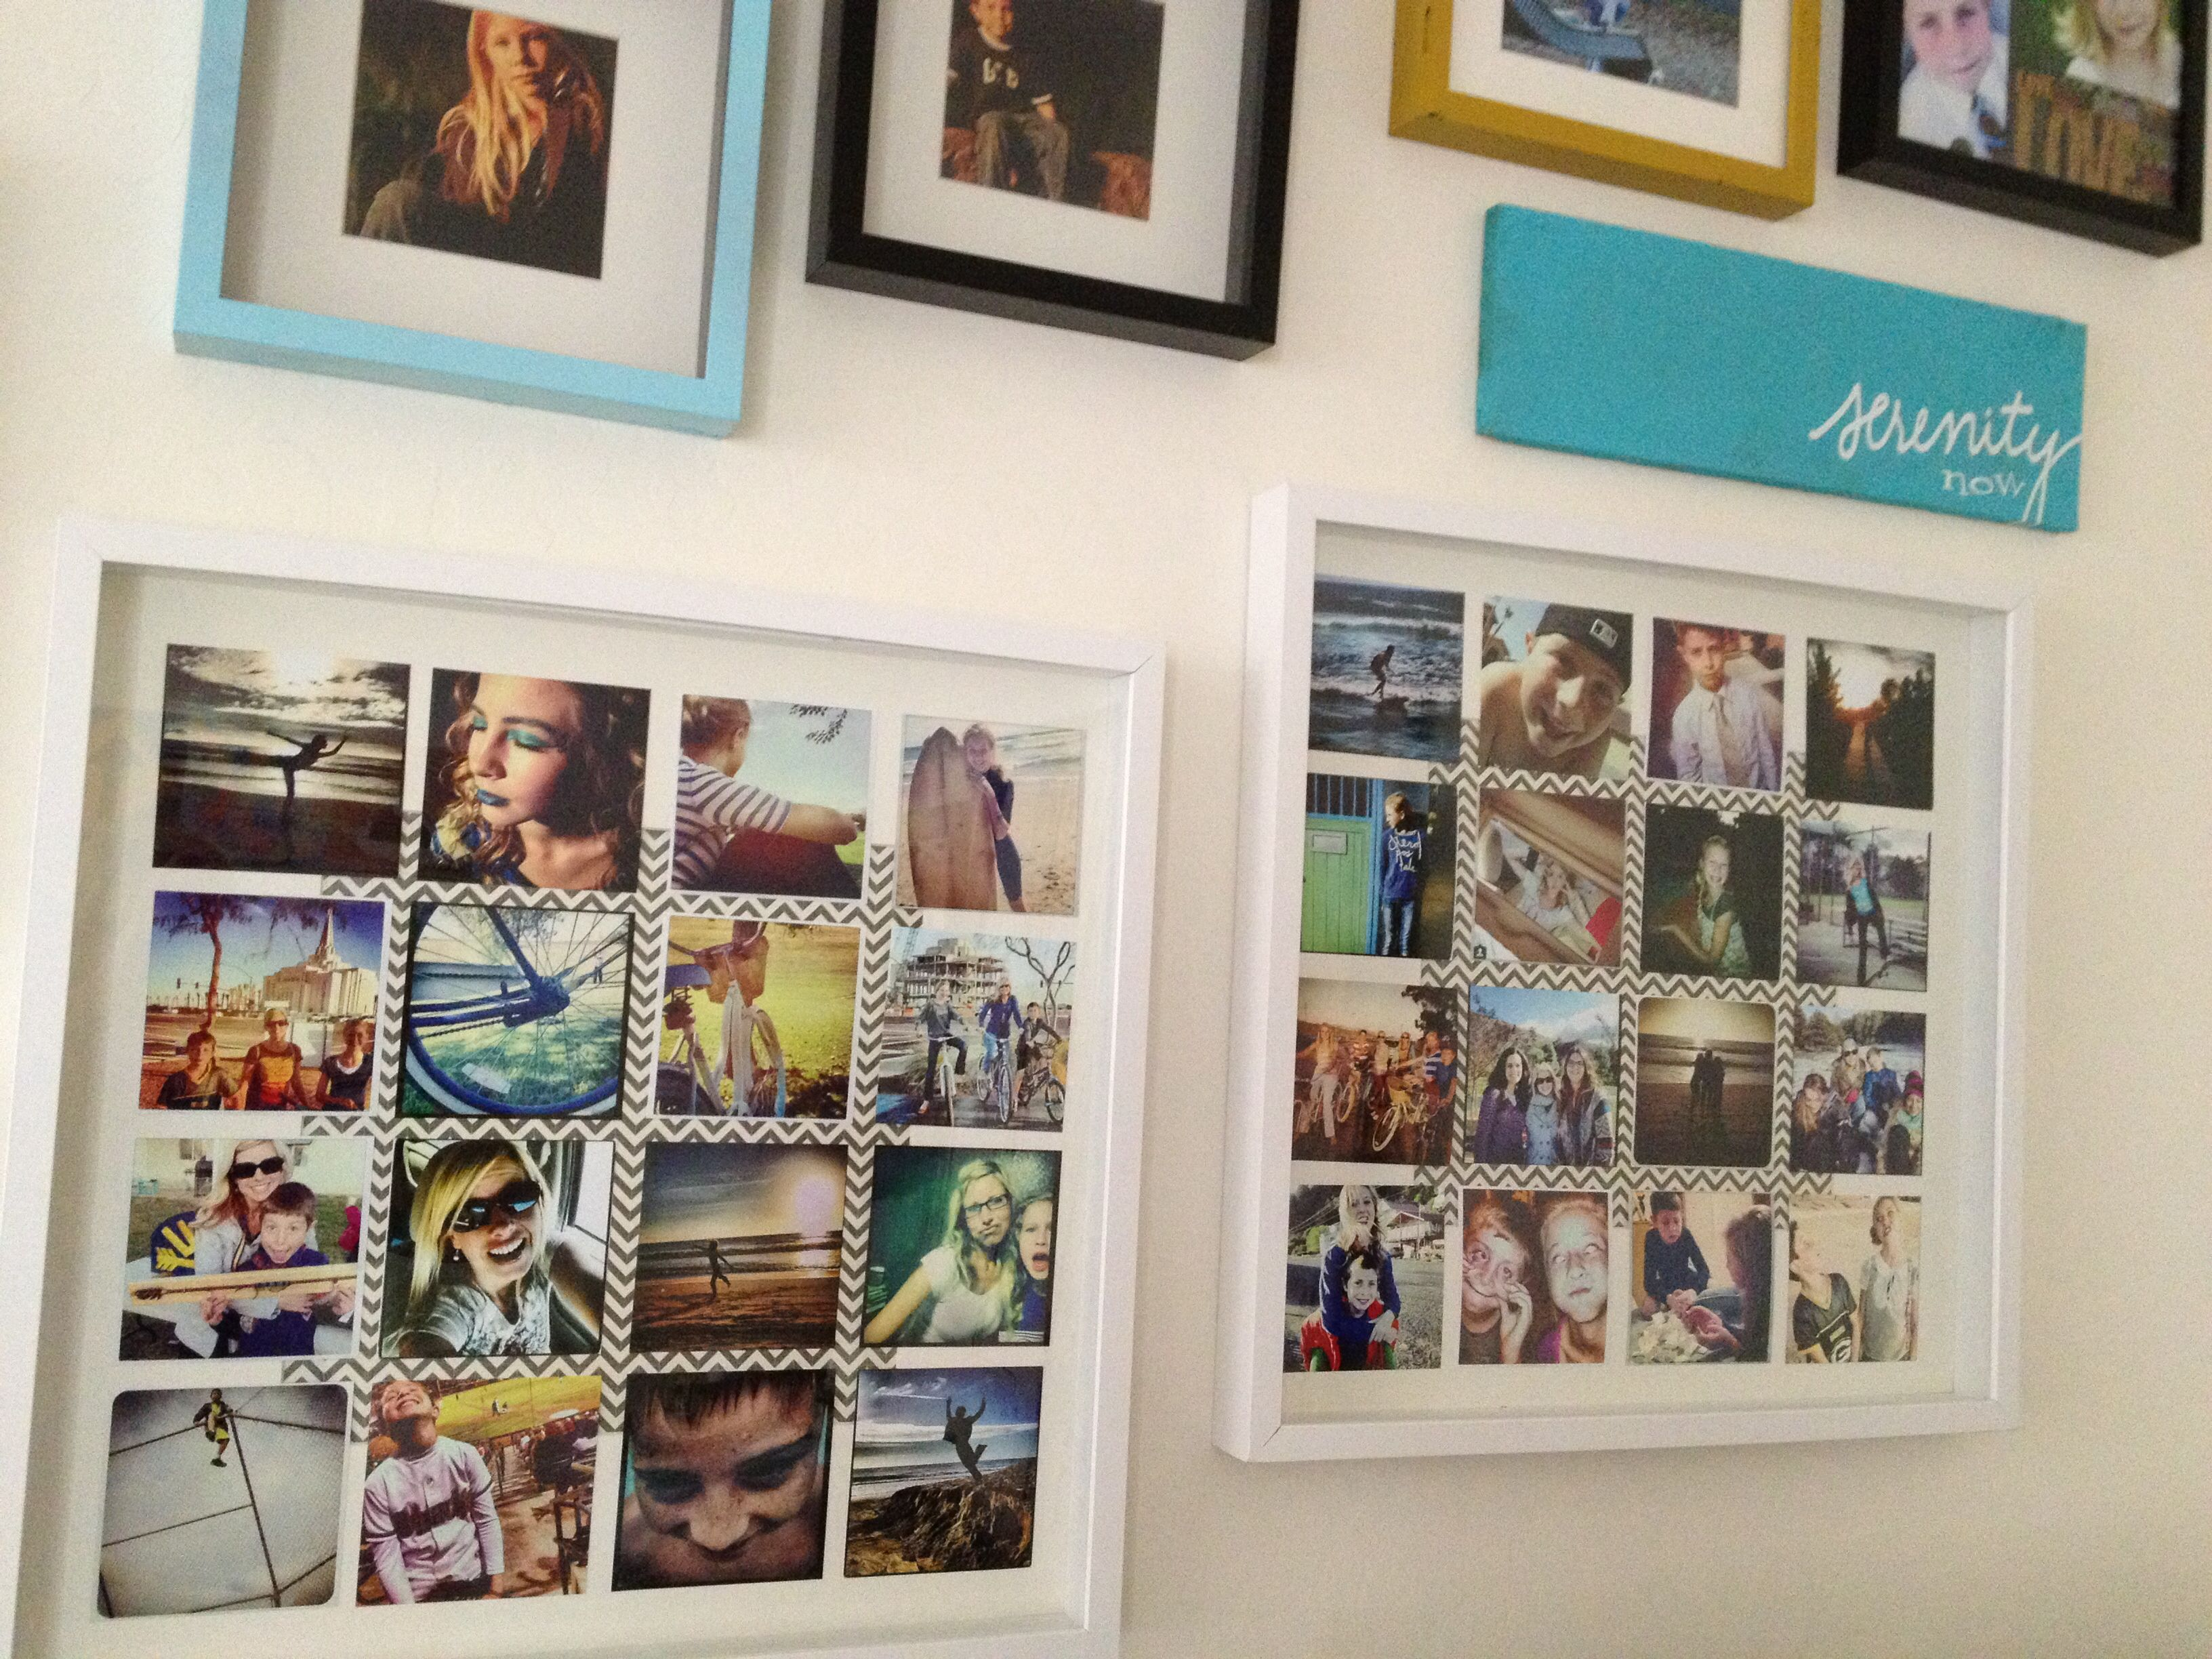 had my favorite instagrams printed at walgreens size 4x4 frames are from ikea